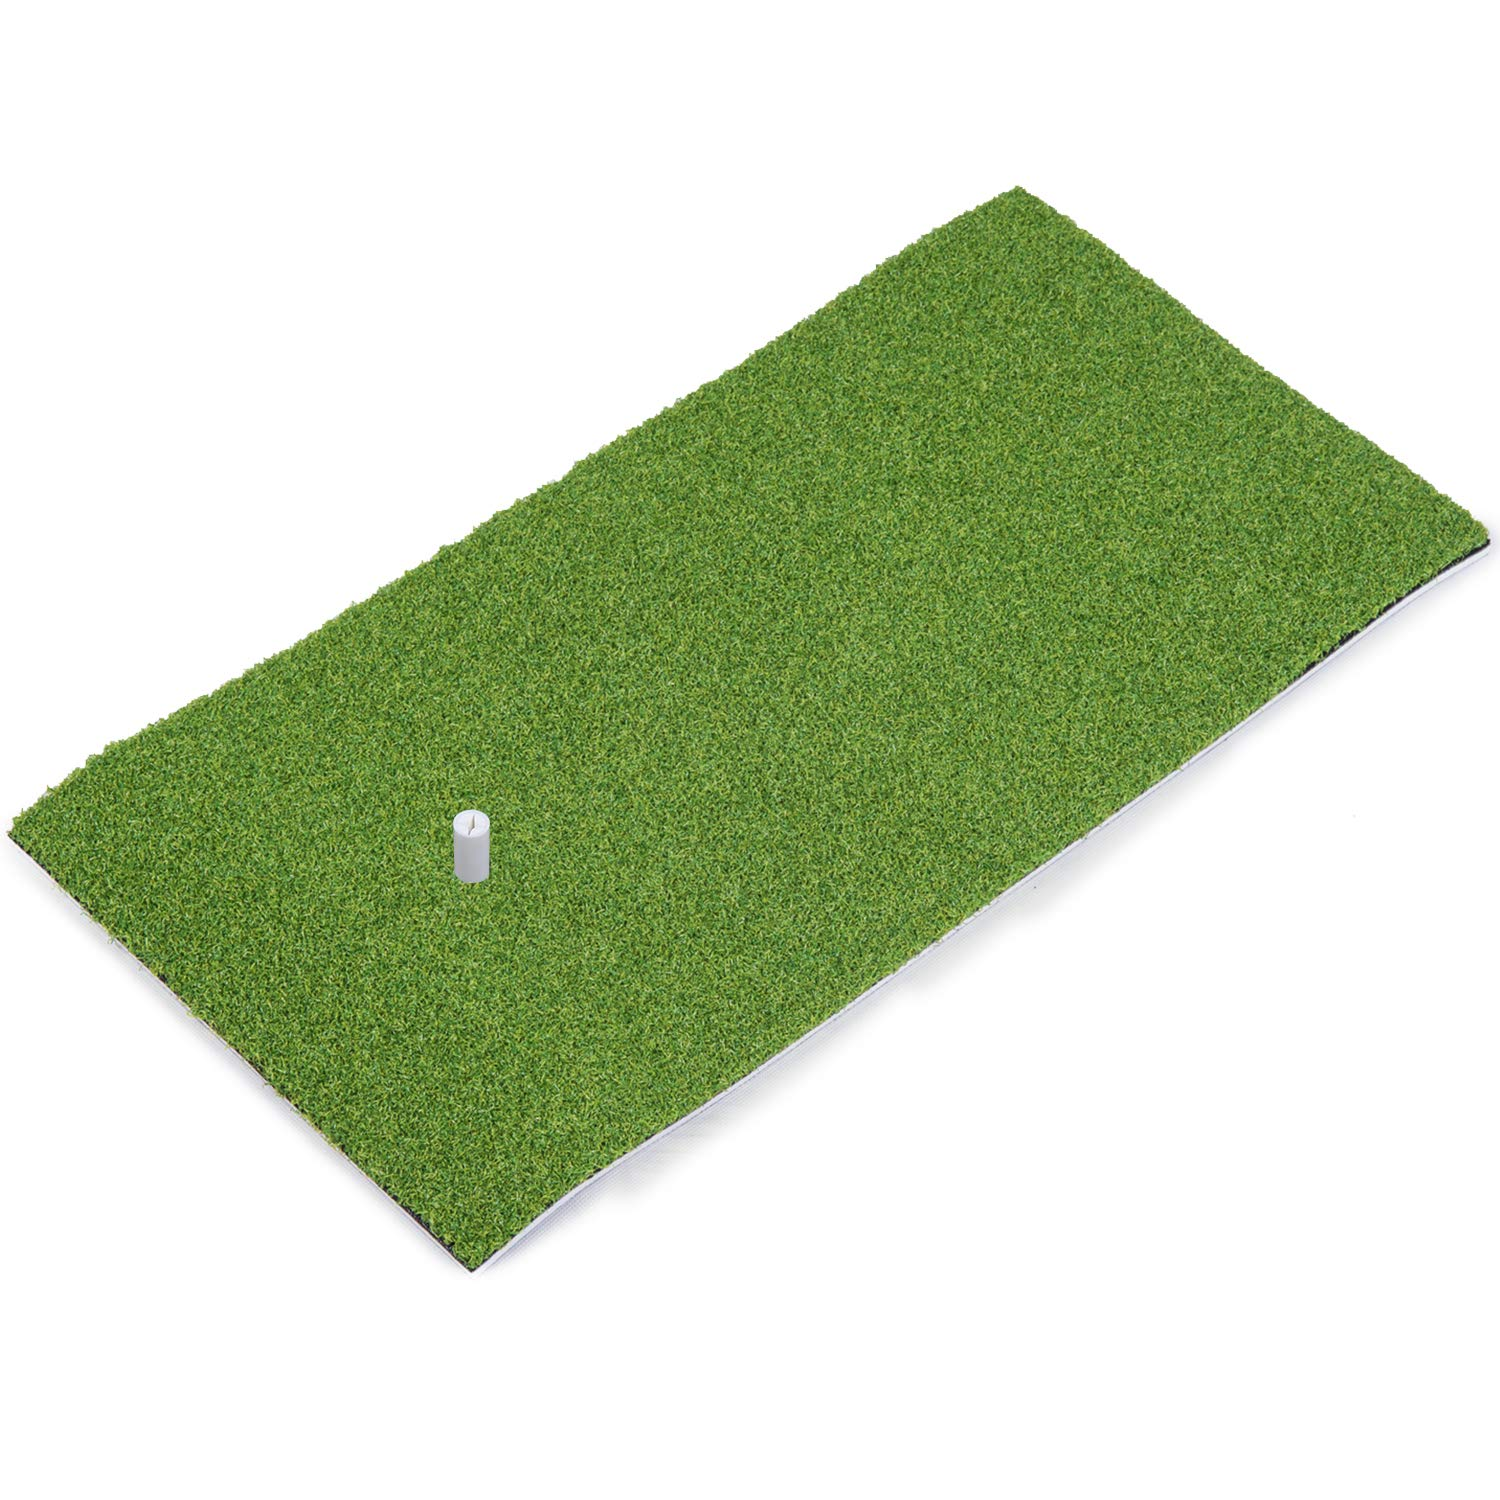 SkyLife Golf Practice Mat 1'x2' Driving Chipping Putting Hitting Turf Training Equipment for Backyard Home Garage Outdoor (1' x 2') by SkyLife